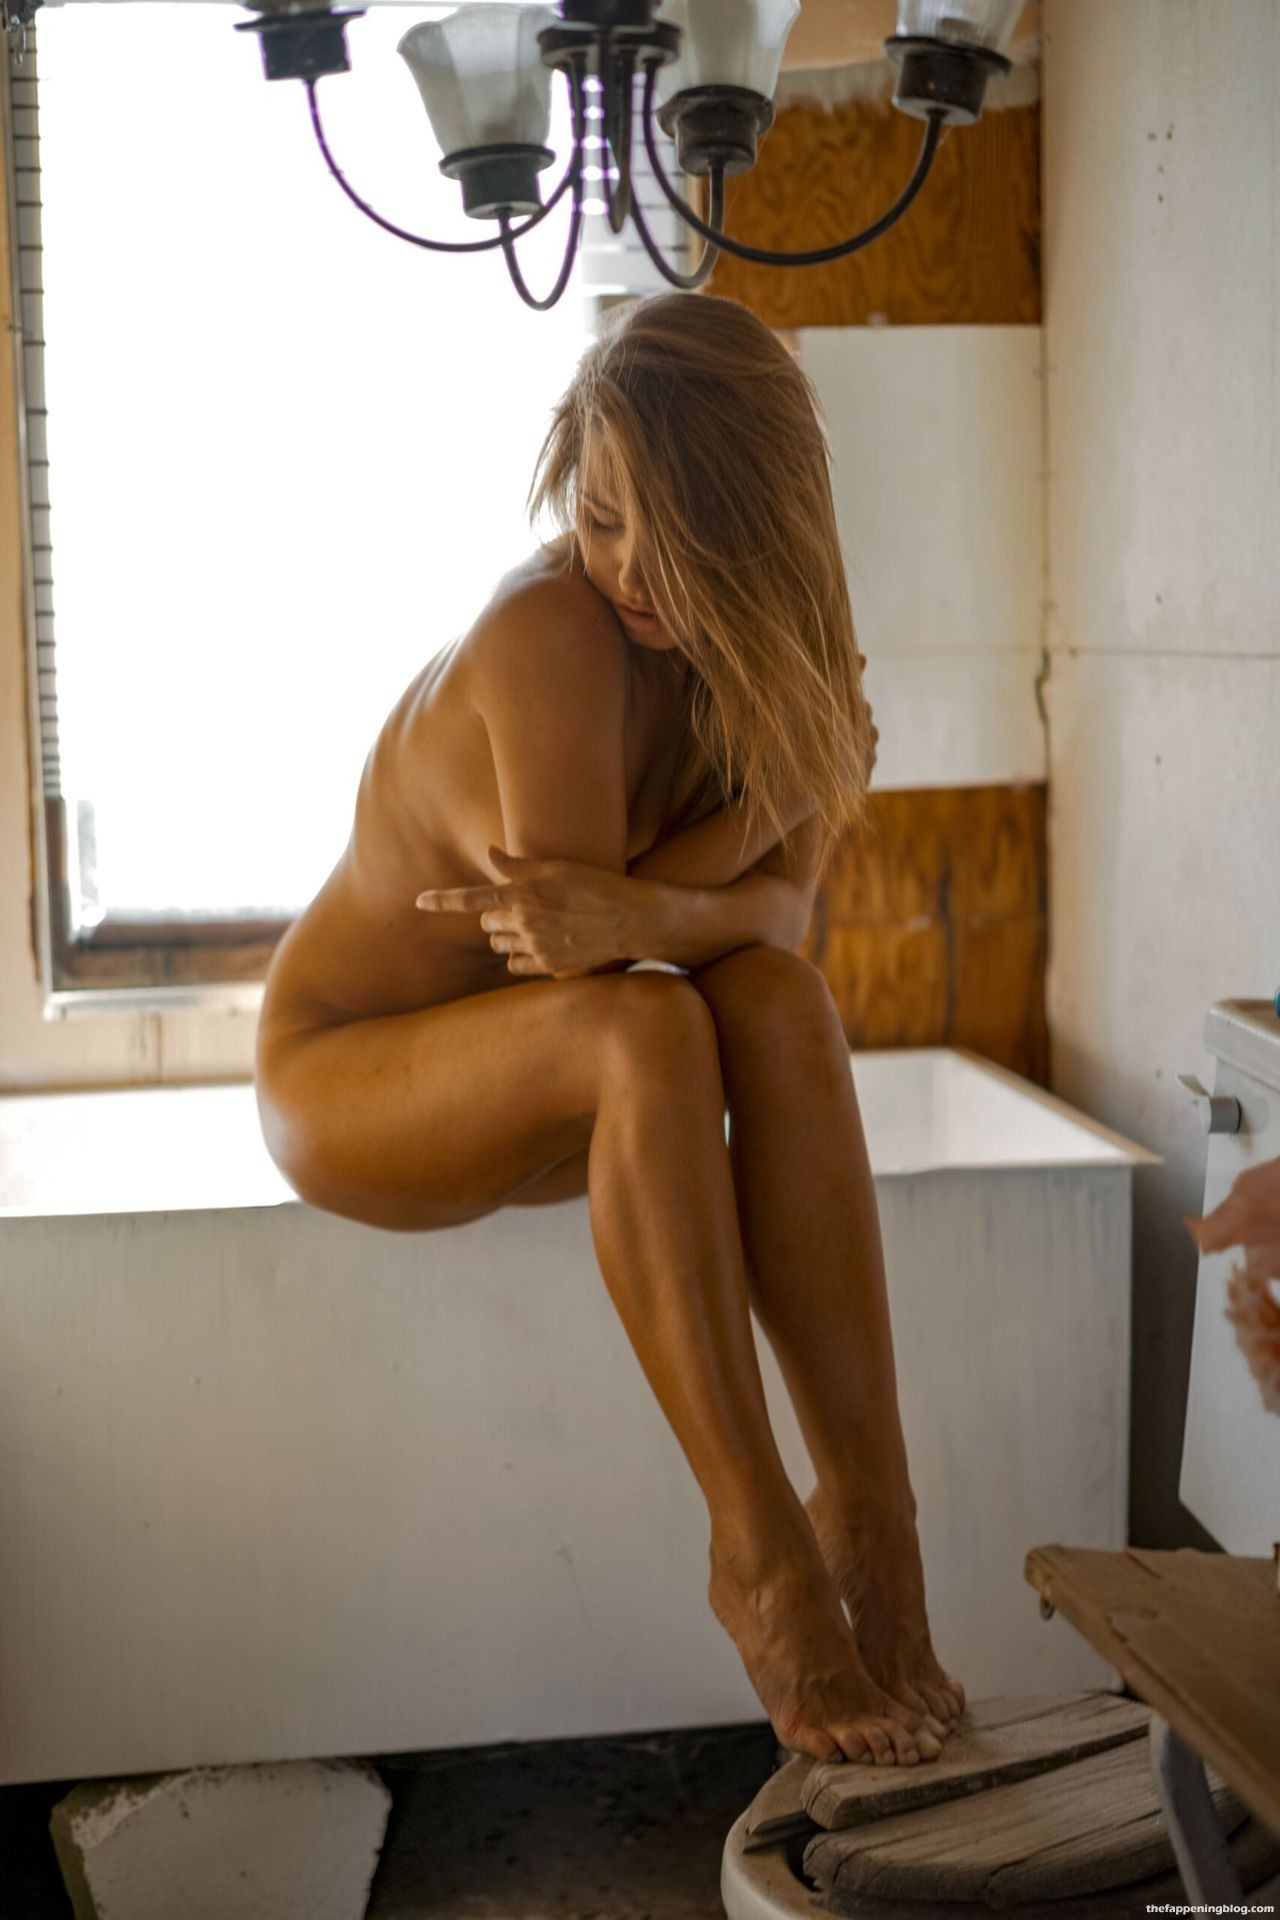 Marisa-Papen-Stunning-Naked-Body-6-scaled1-thefappeningblog.com_.jpg